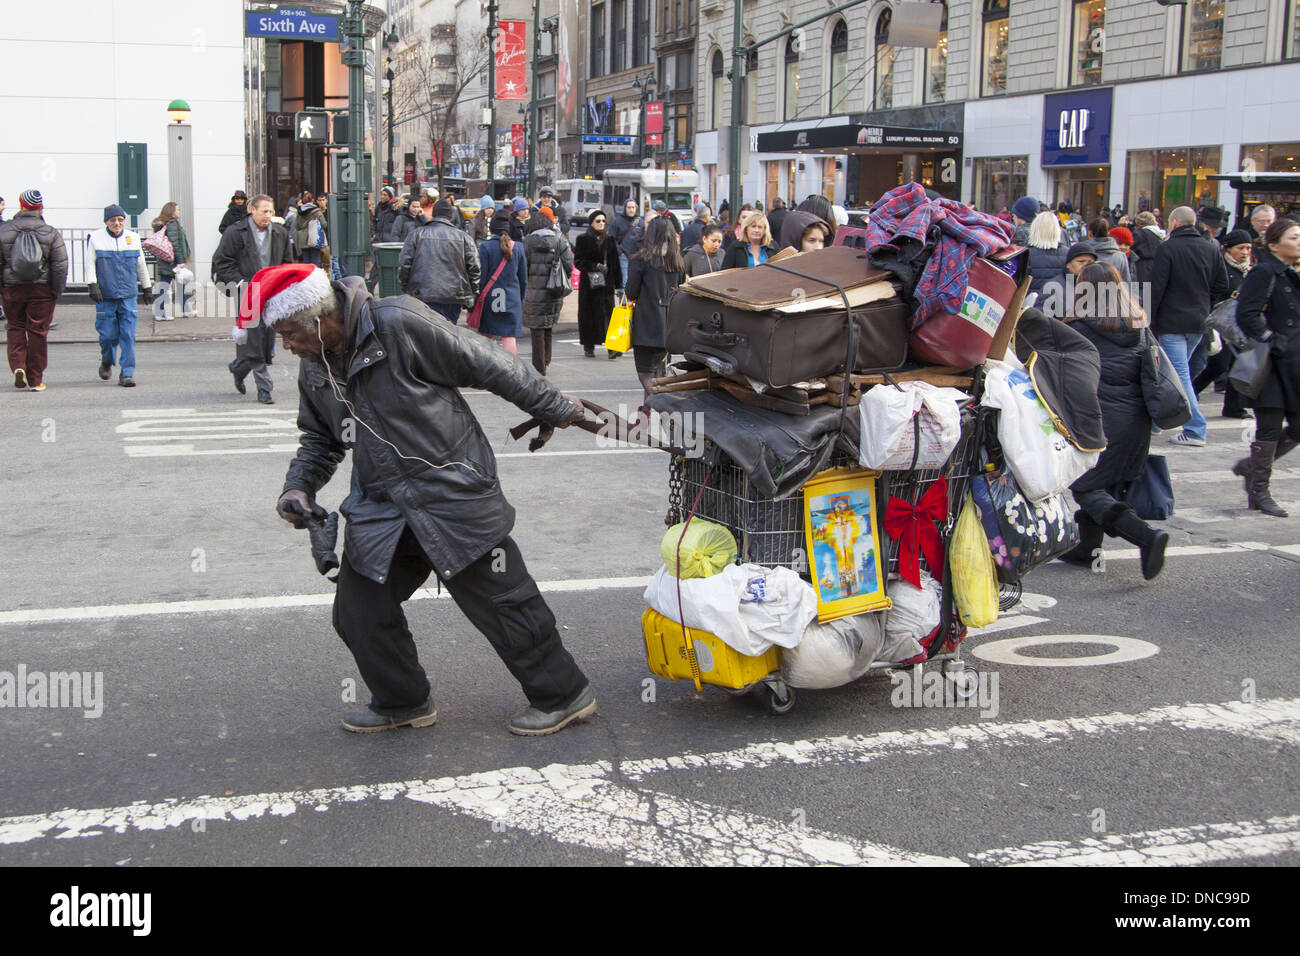 Homeless man in the Christmas spirit struggles up Broadway with his possessions in toe. - Stock Image